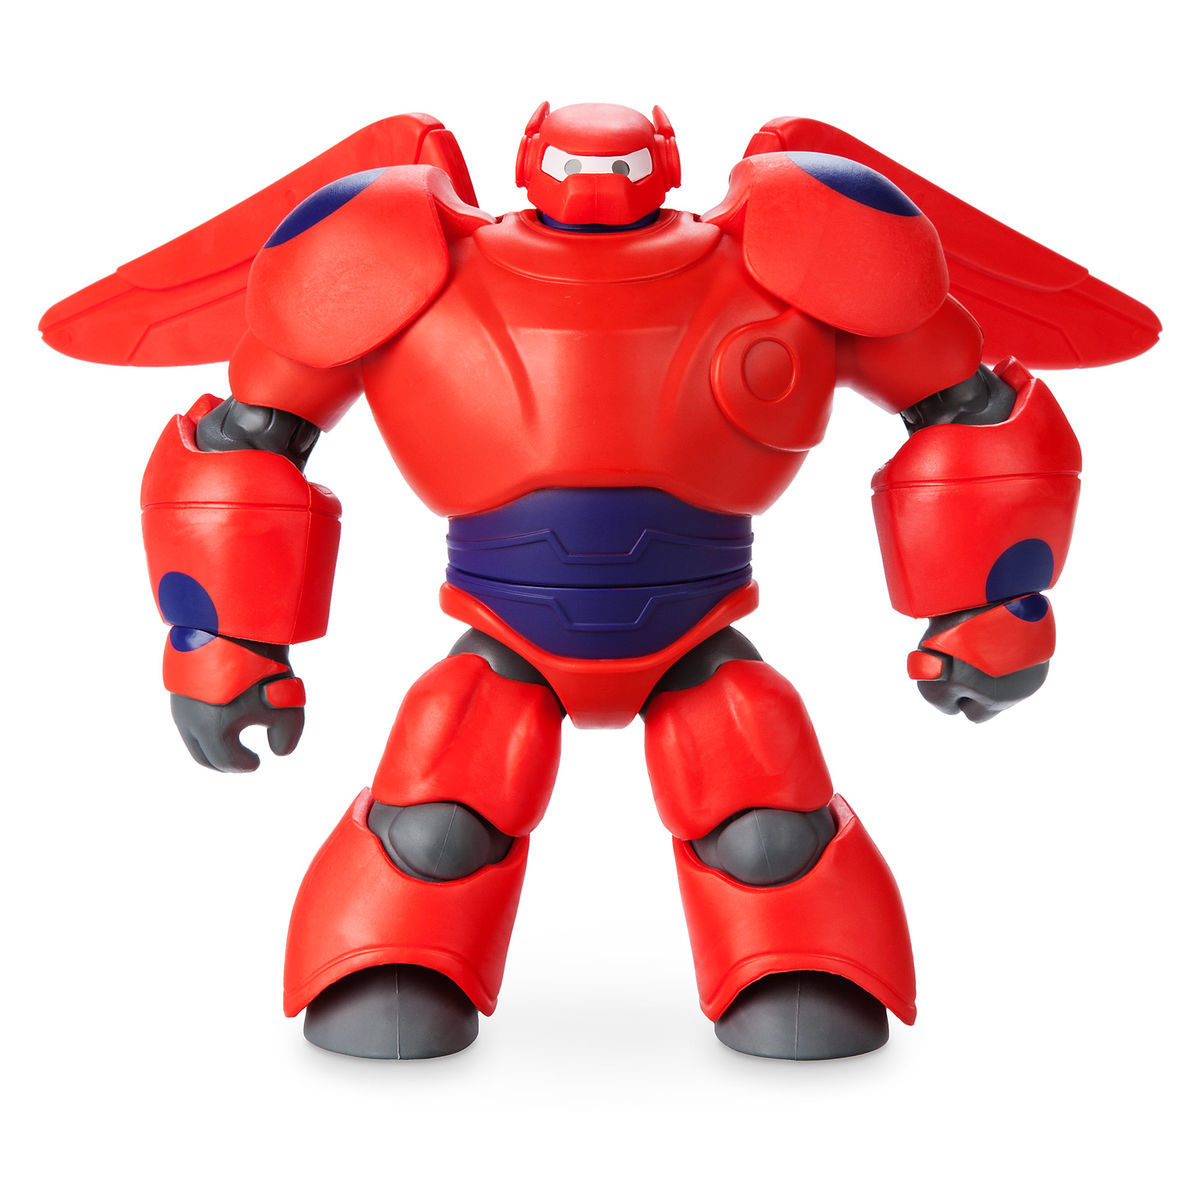 Two New Big Hero 6 Toybox Action Figures Released